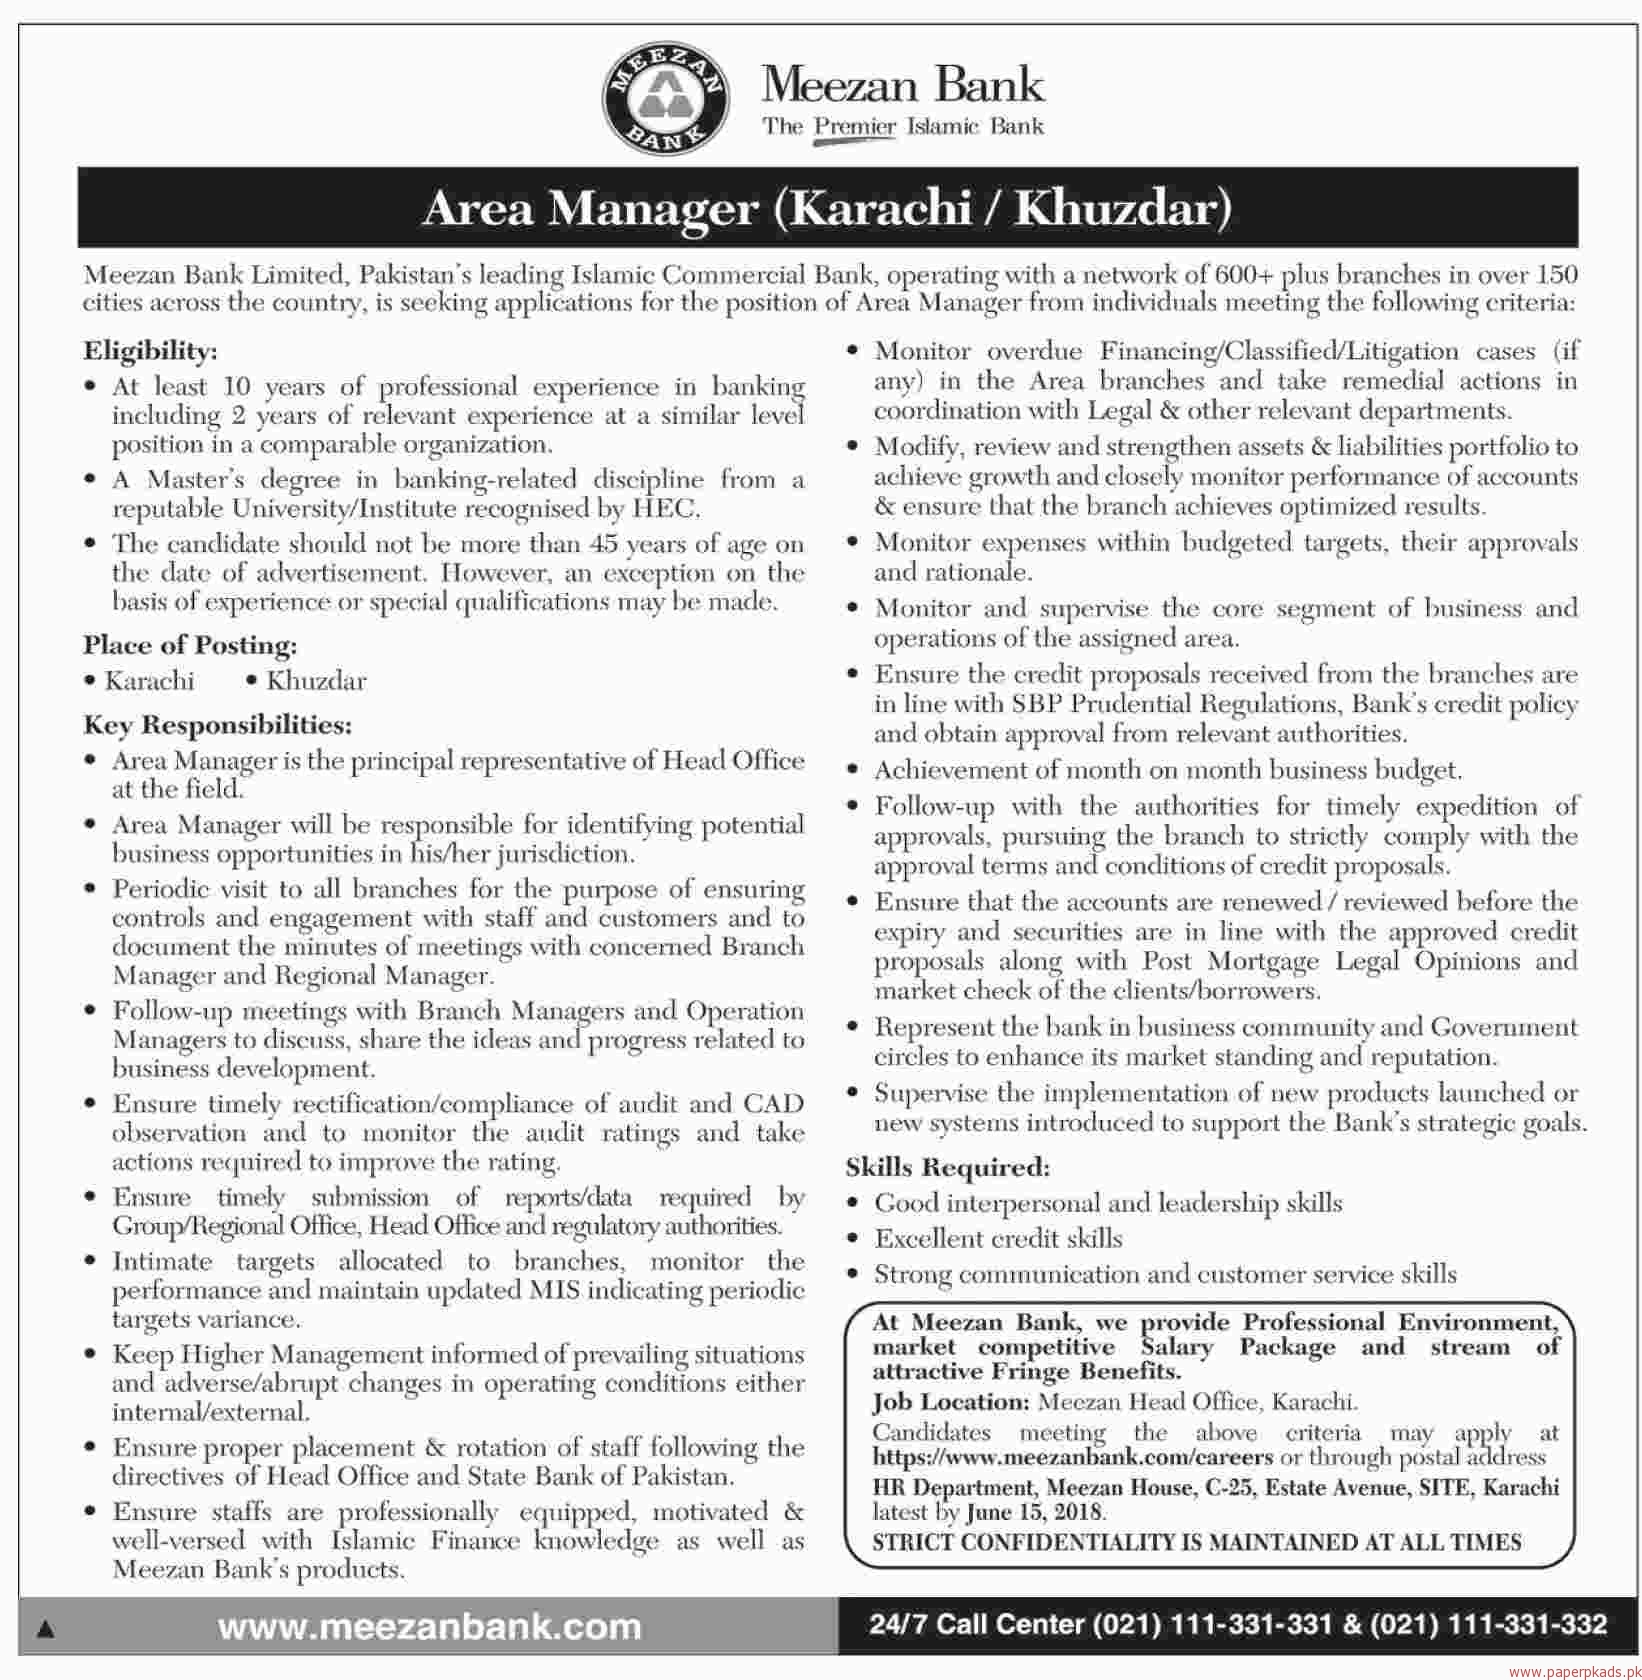 Meezan Bank Limited Pakistan Jobs 2018